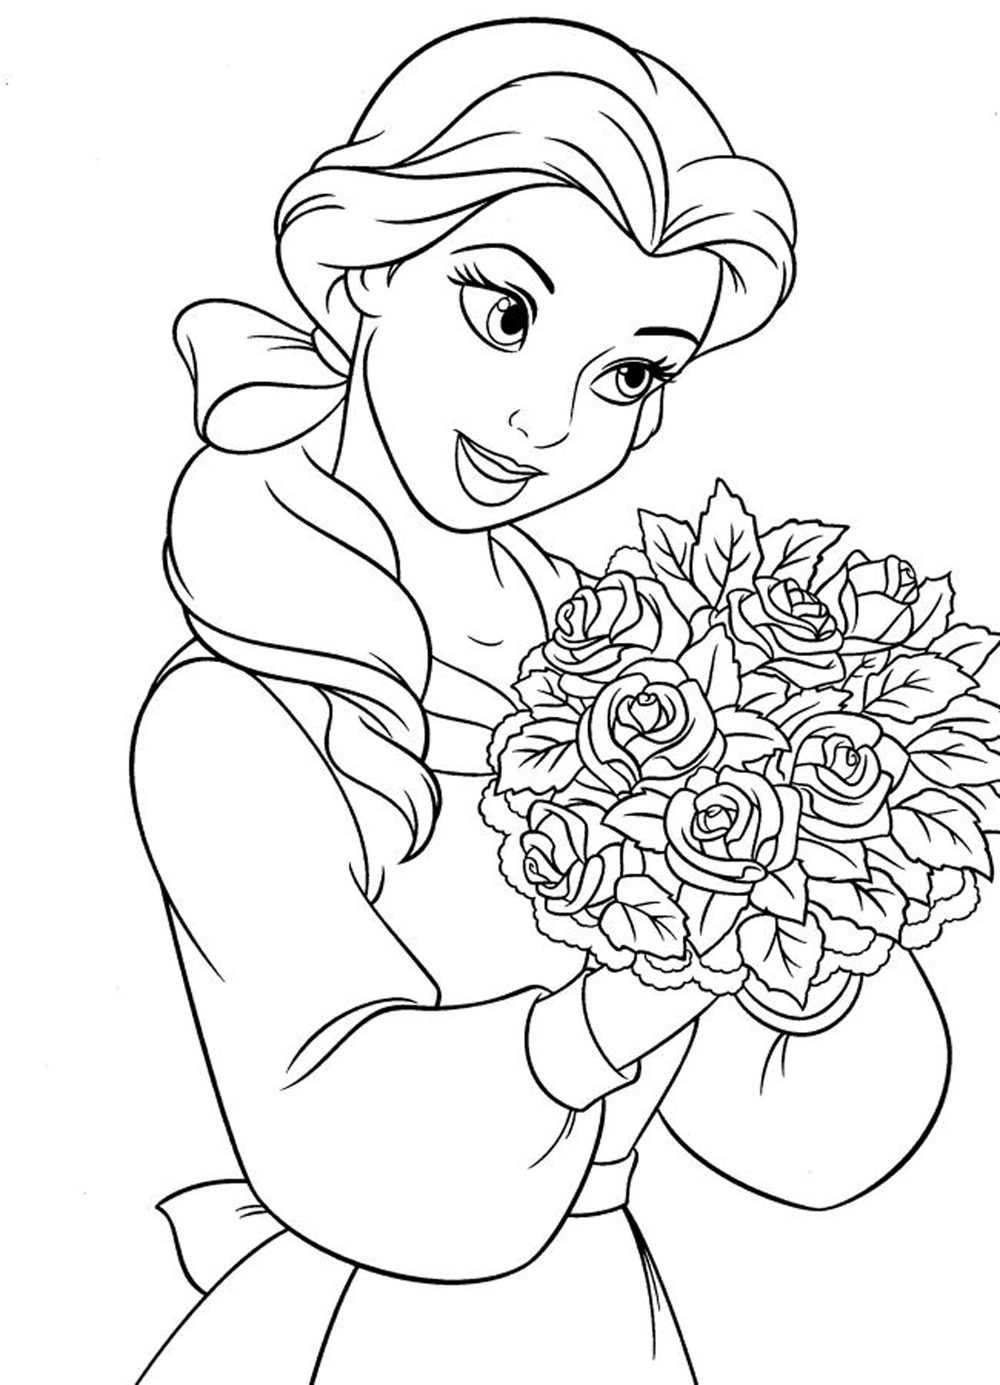 printable colouring pages for girls moxie coloring pages for girls to print for free colouring pages for girls printable